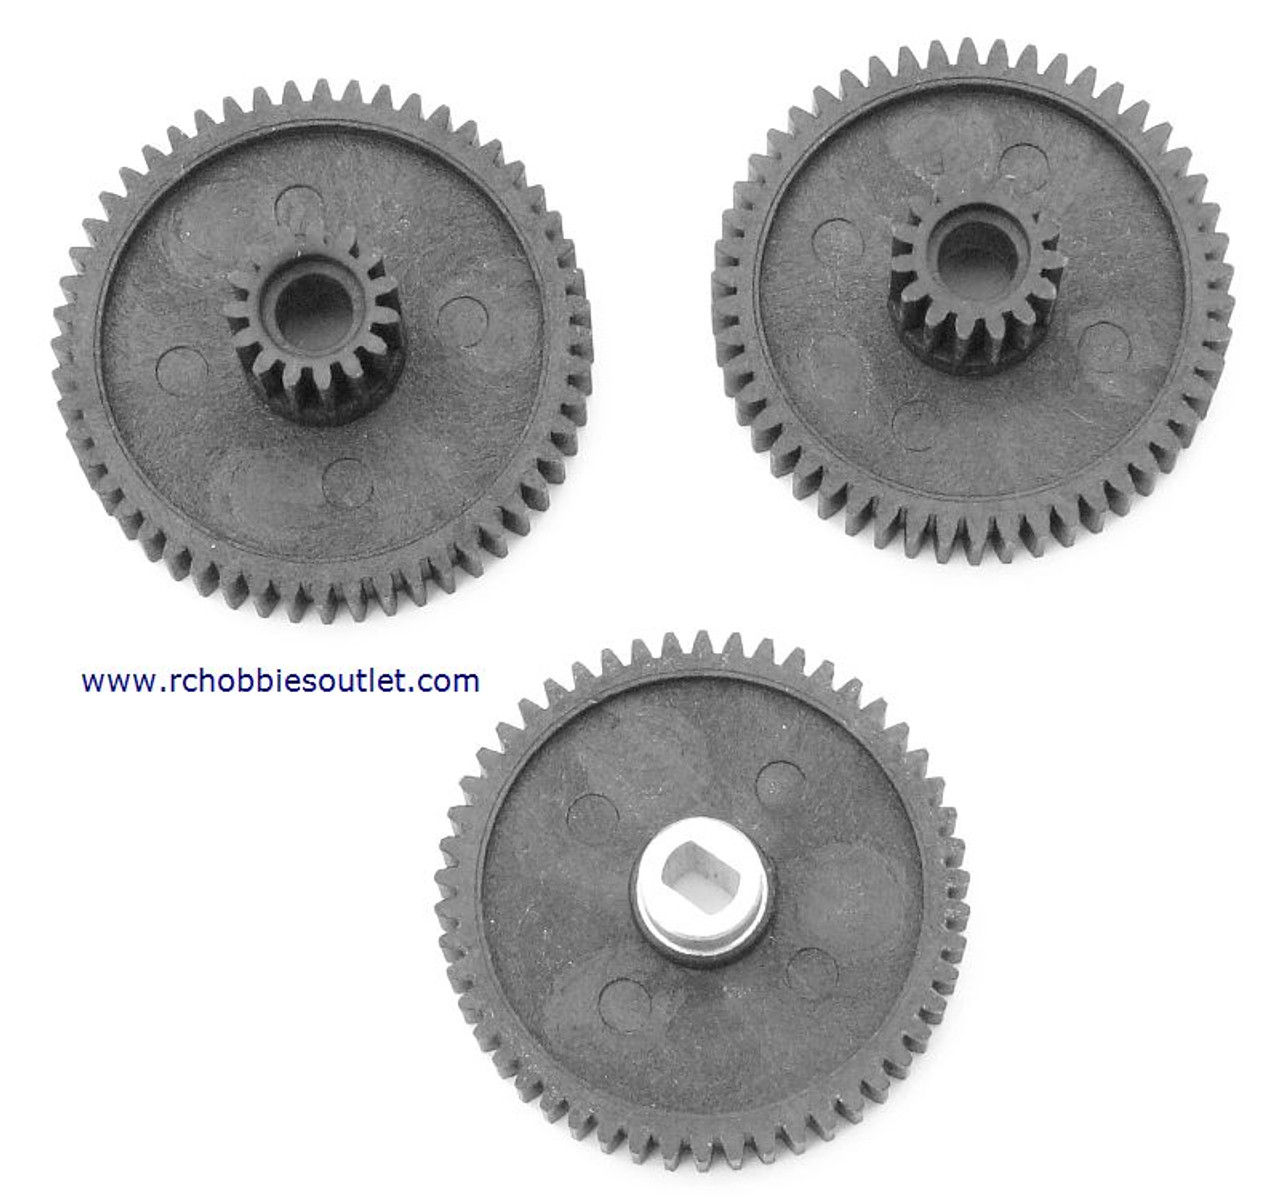 59017 Differential Gear Set for 1/8 scale HSP, Redcat,  Rock Crawler